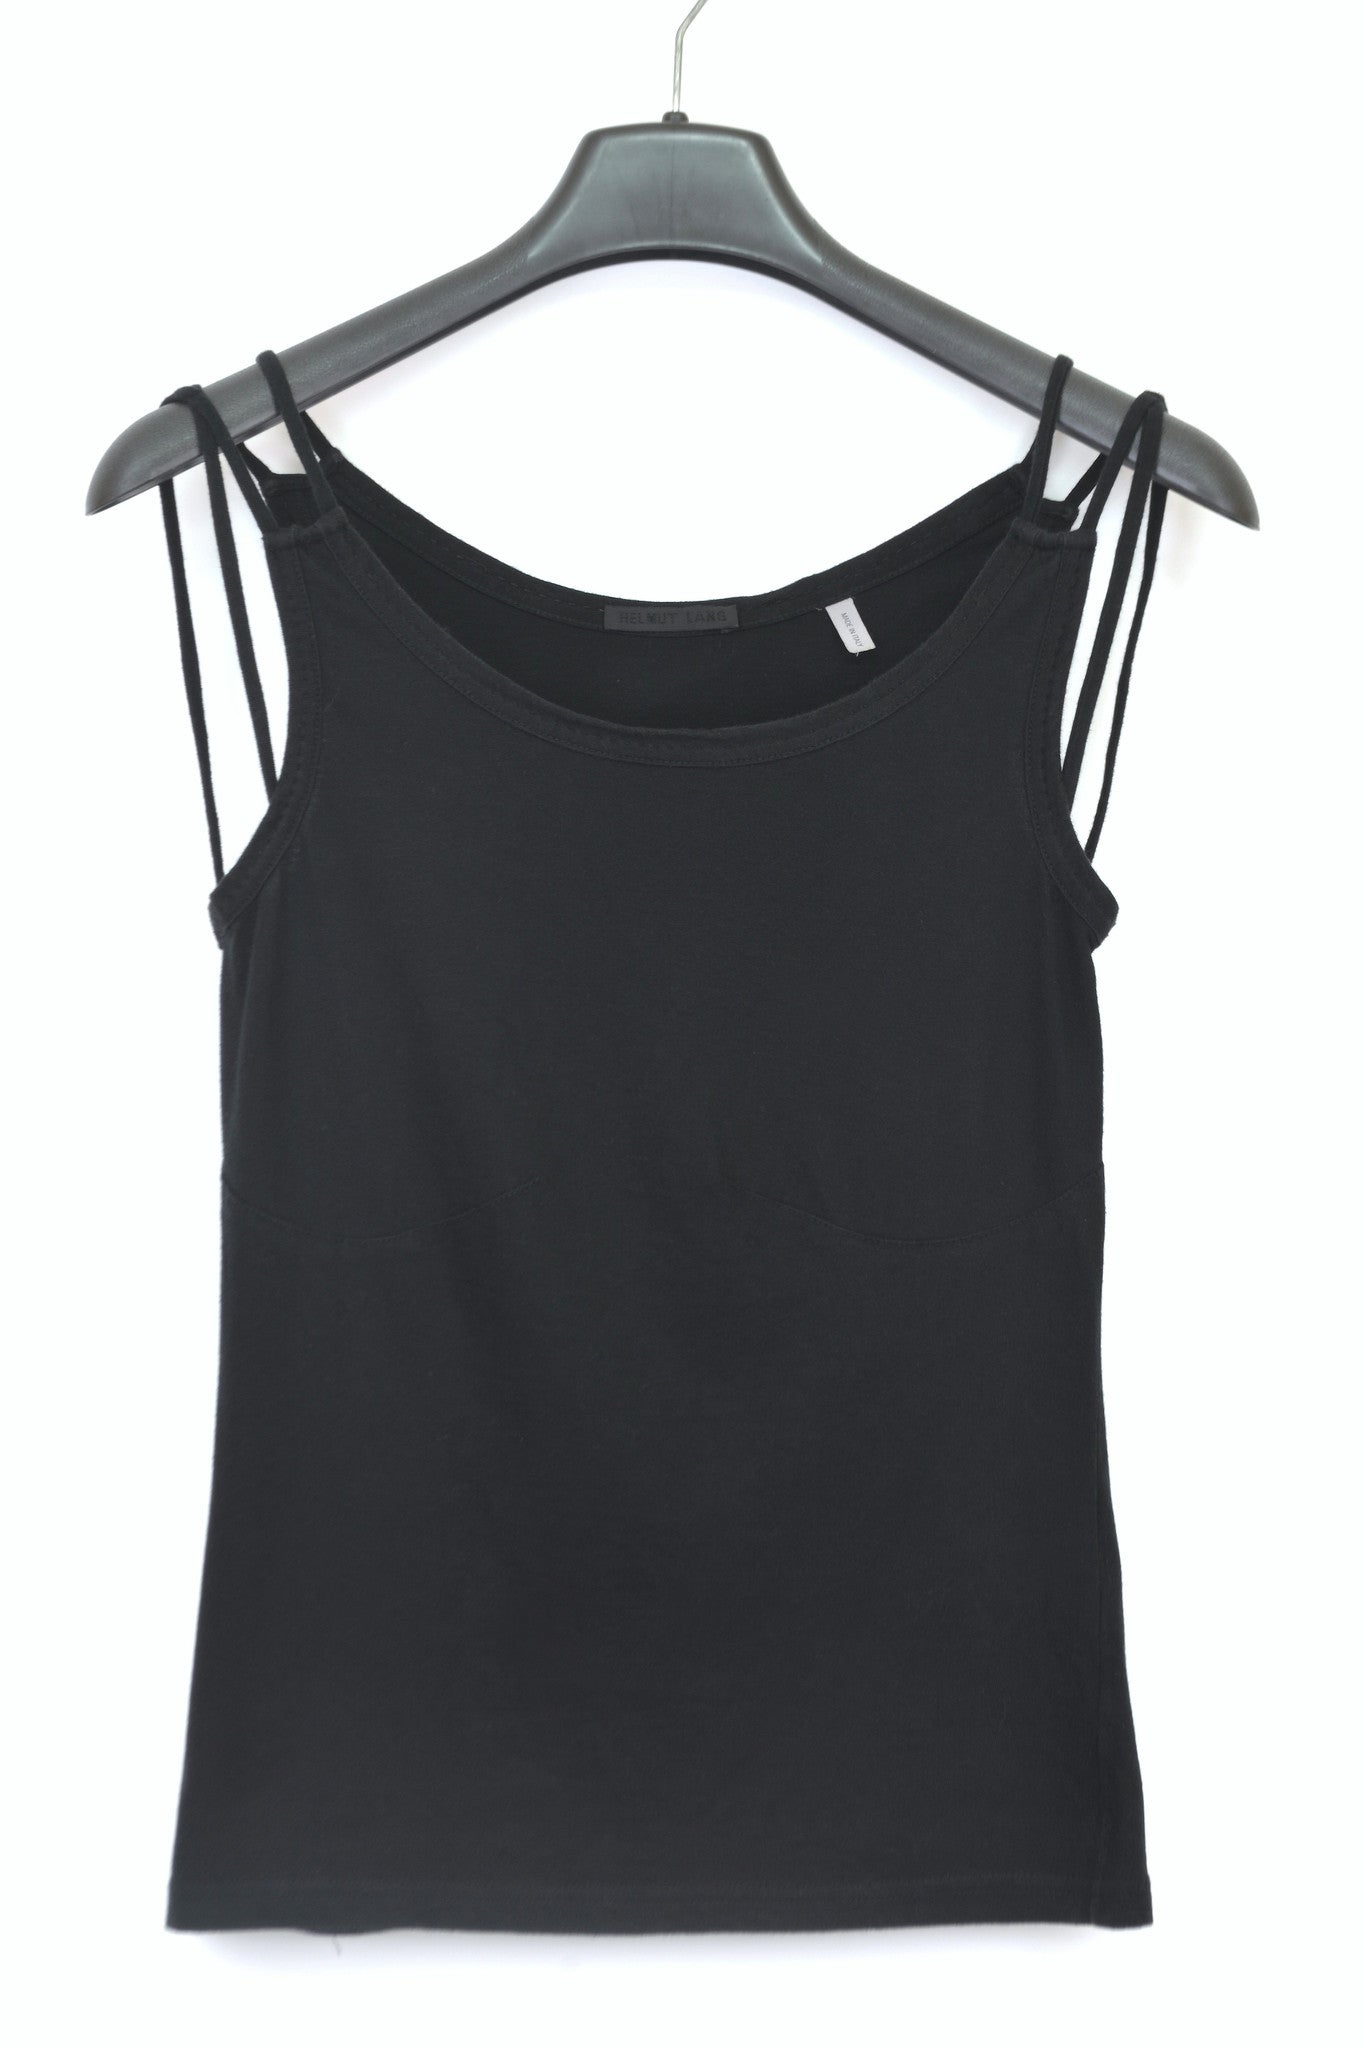 2001 Tailored Tank Top with Shoulder Strap Details